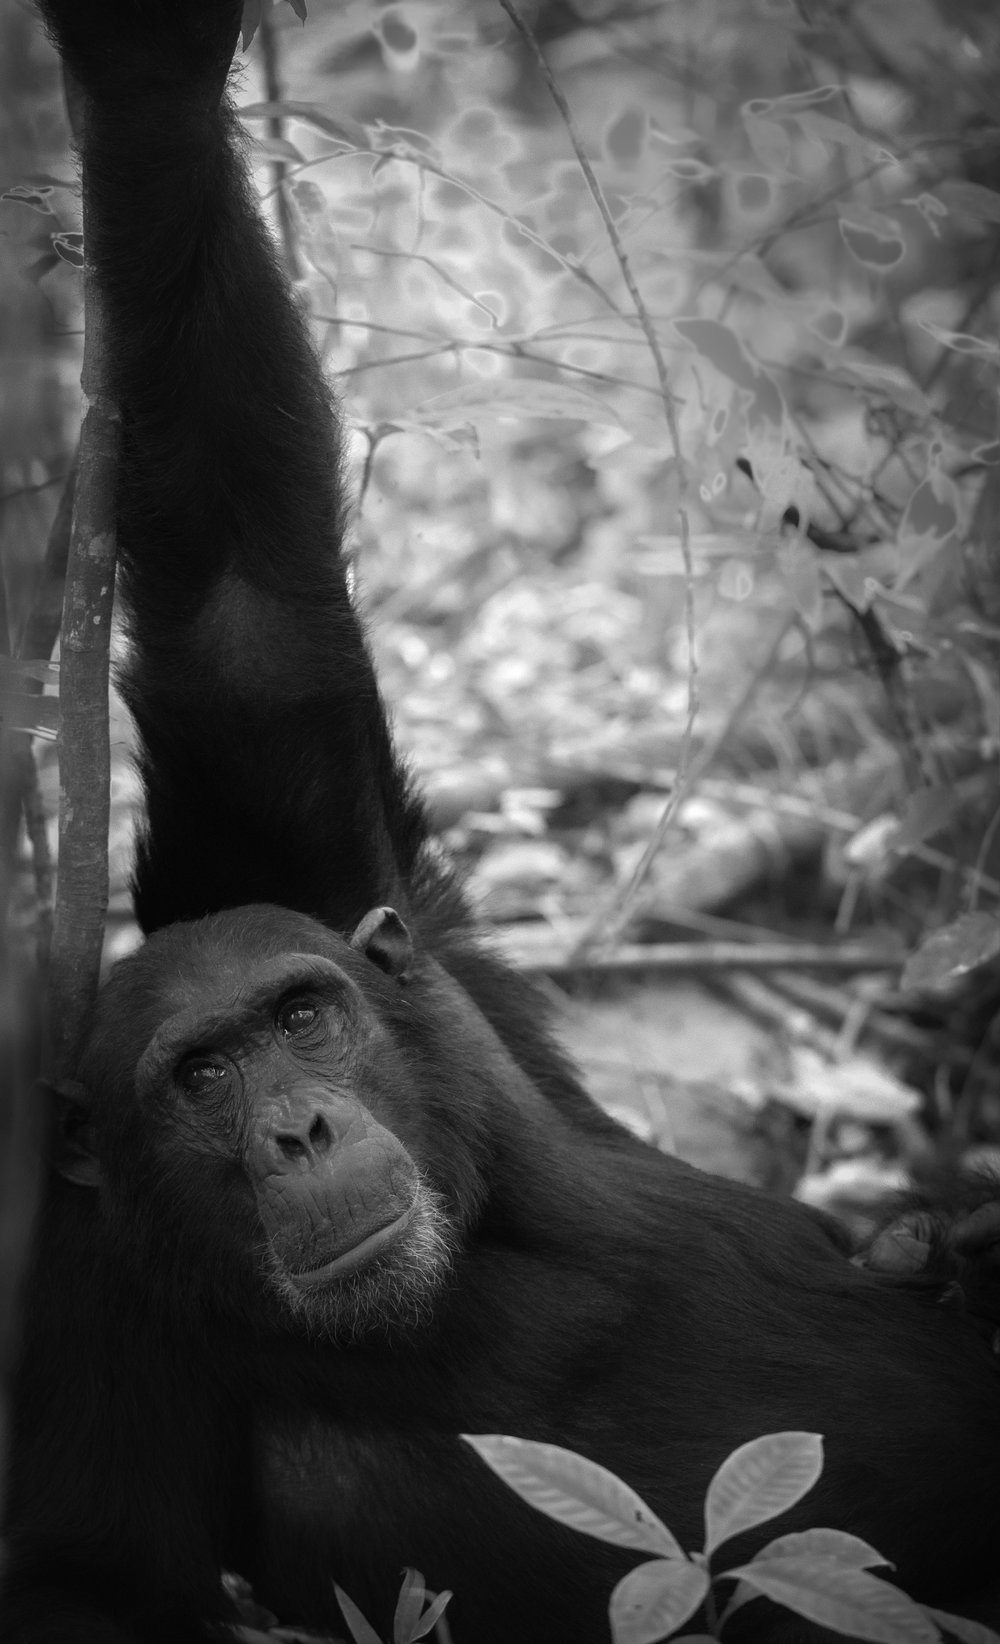 Animals and their home  During my last trip to Tanzania, I revisited Tarangire National Park, Serengeti and Ngorongoro Crater, and then flew on a bush plane to the Mahale Mountains, along the shores of Lake Tanganyika, where we hiked into the forests to see chimpanzees. And although seeing chimpanzees in the wild was an incredible experience, and in spite of their being tolerant about our being in their space, I definitely had the feeling of trespassing. It's a dilemma we face in Yellowstone and Yosemite:  We love to go there to appreciate nature, but how much contact is too much, and when do we love something to death?